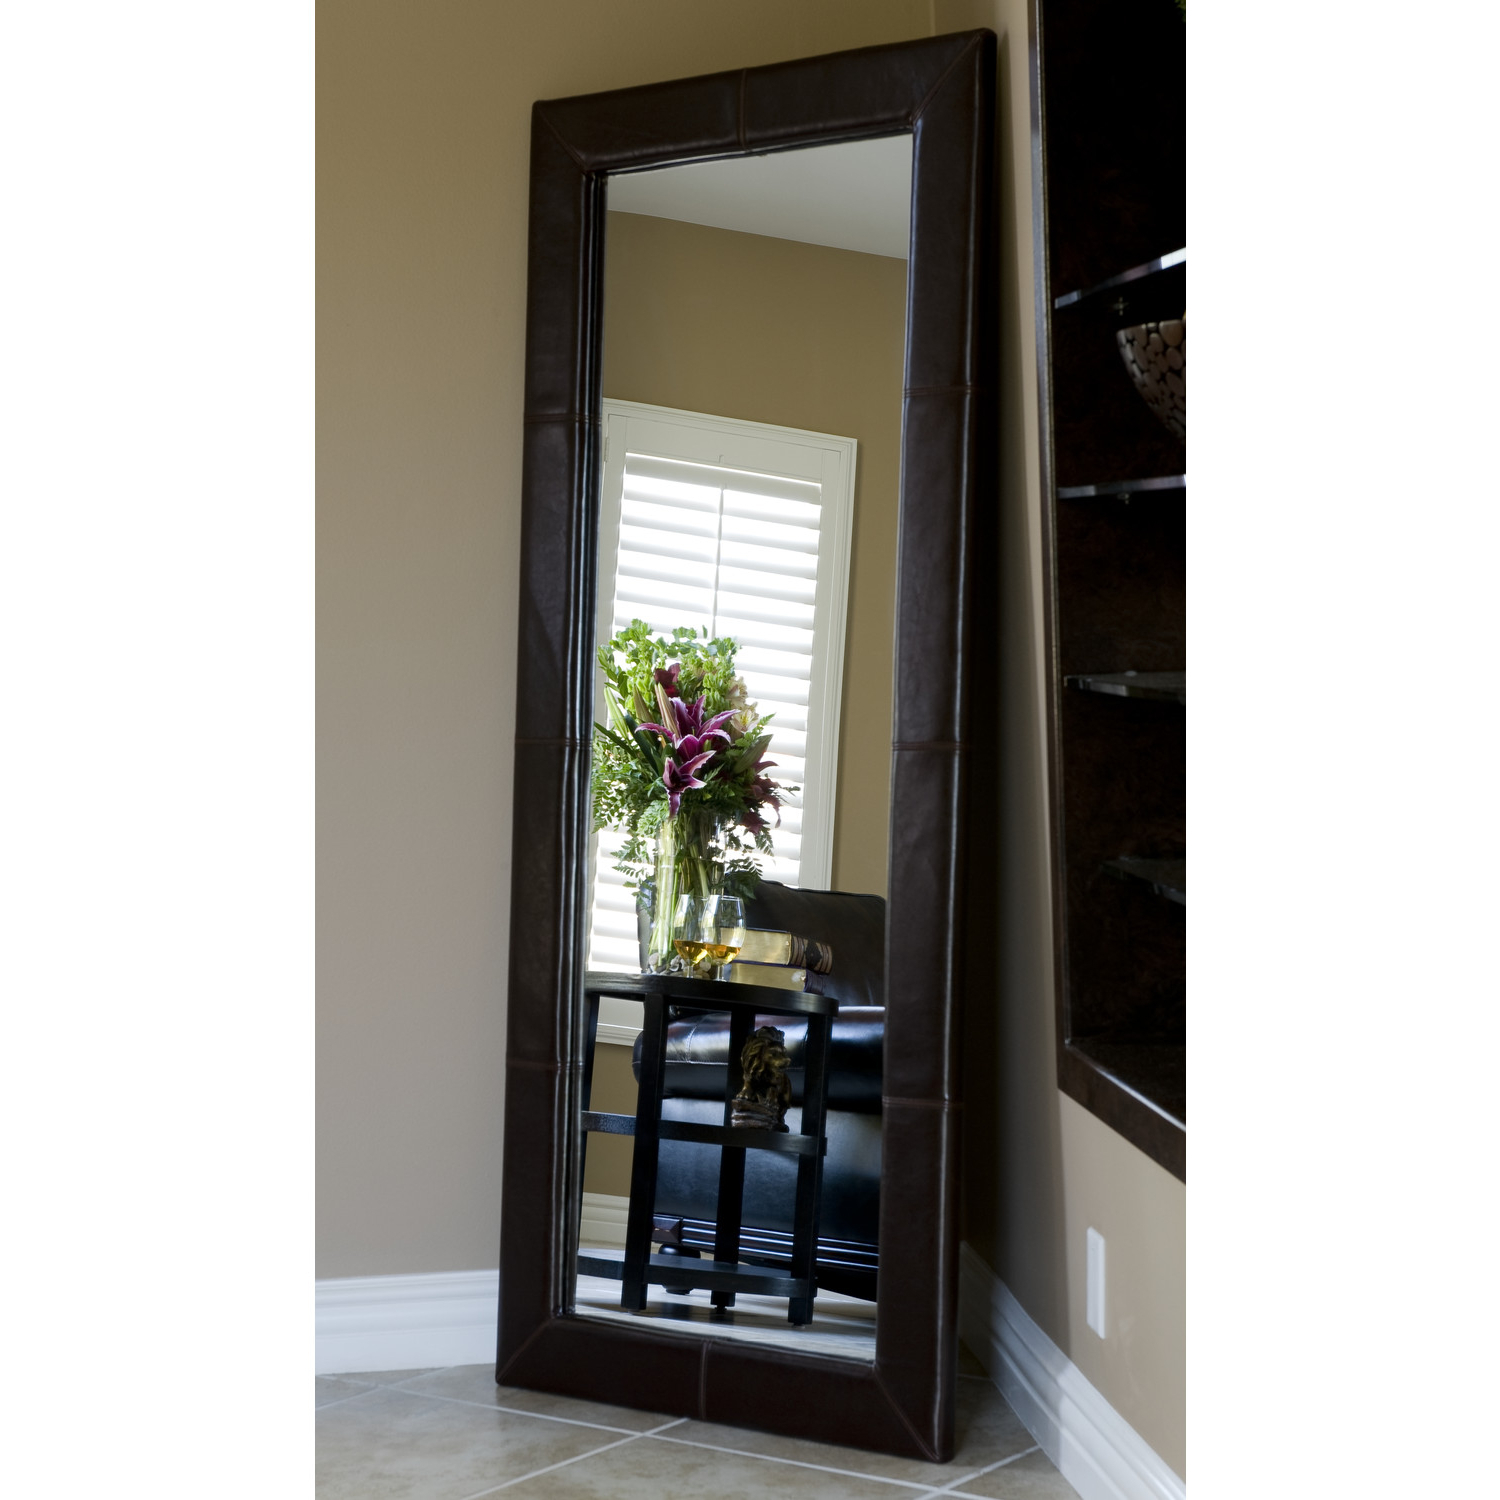 Most Up To Date Mirrors: Stylish Look And Trendy Design With Costco Mirrors With Regard To Stand Up Wall Mirrors (View 11 of 20)